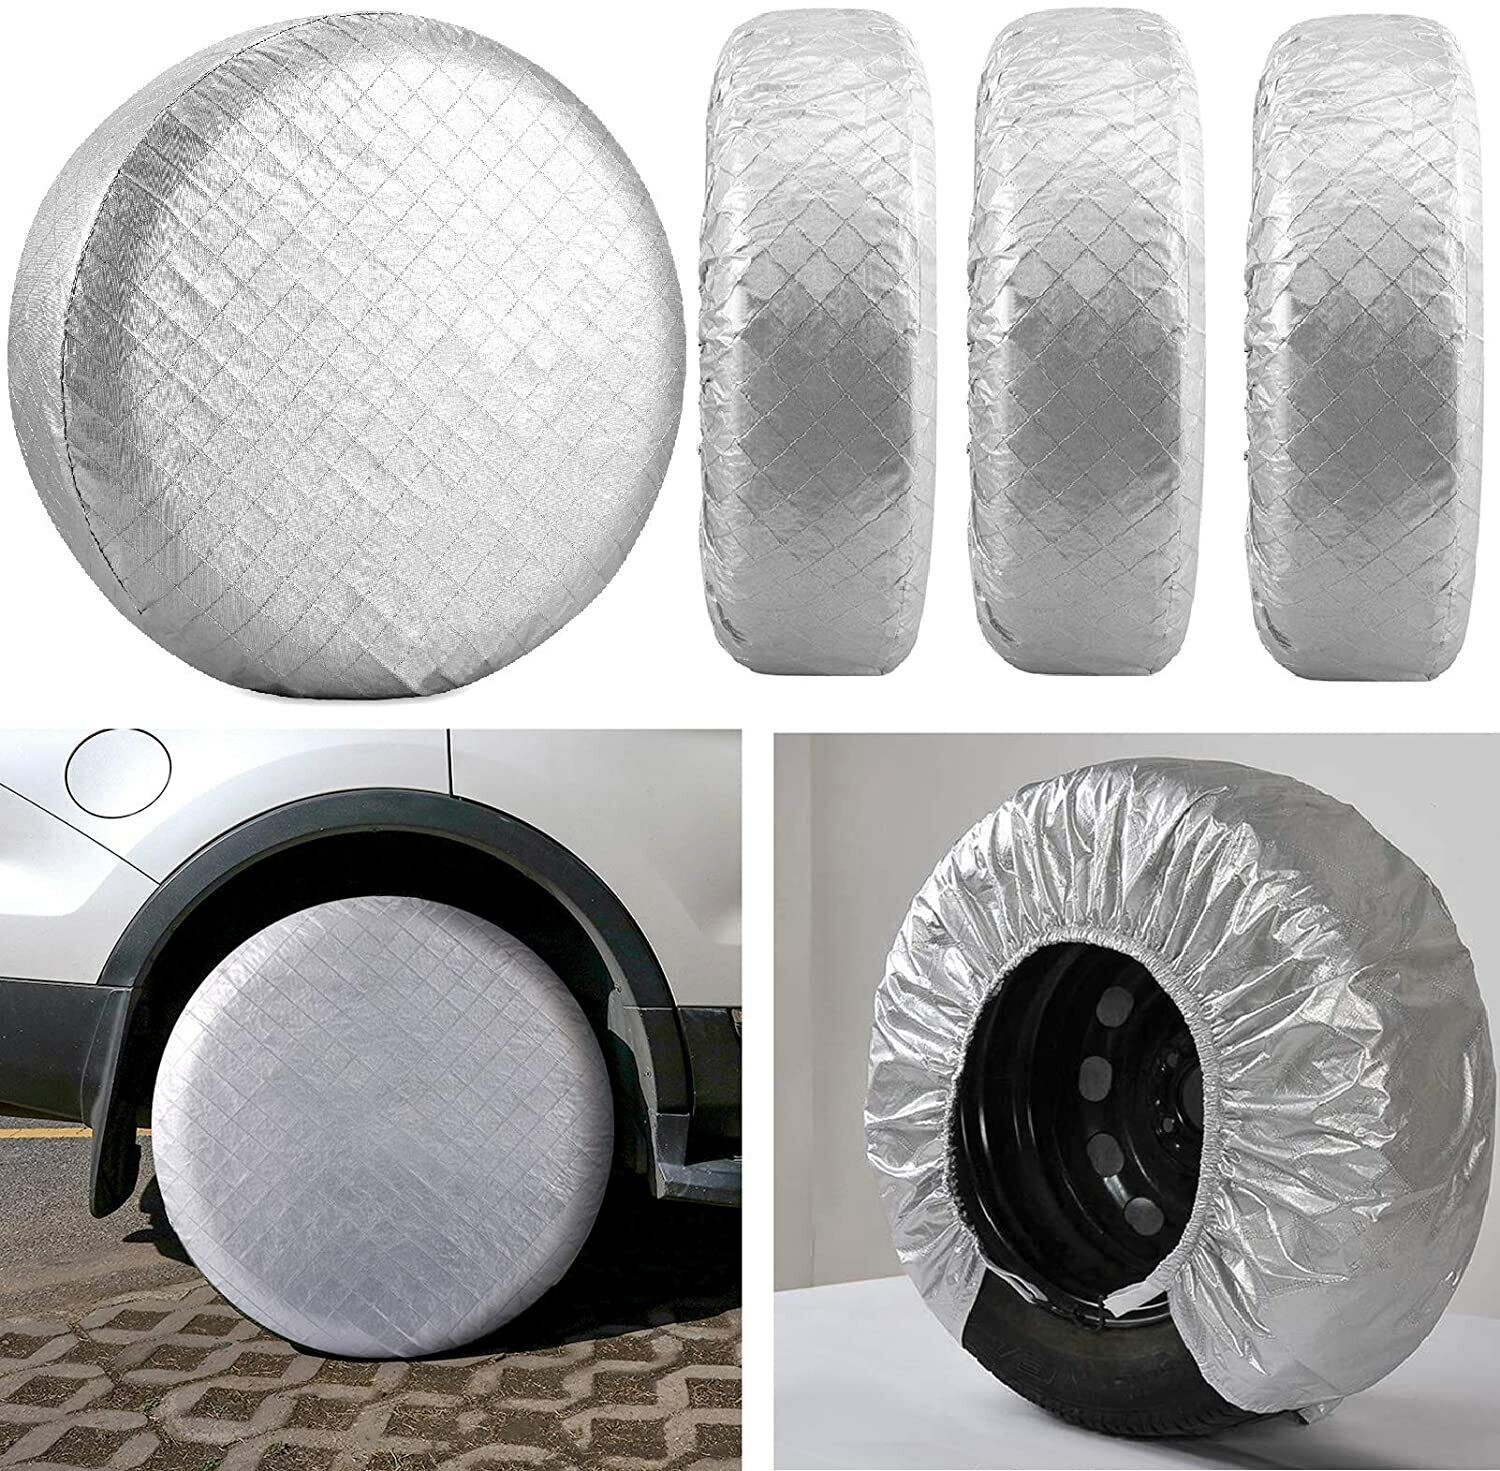 Tire Covers for RV Wheel Covers Motorhome Tires Set of 4, Waterproof UV Sun Tire Car & Truck Parts